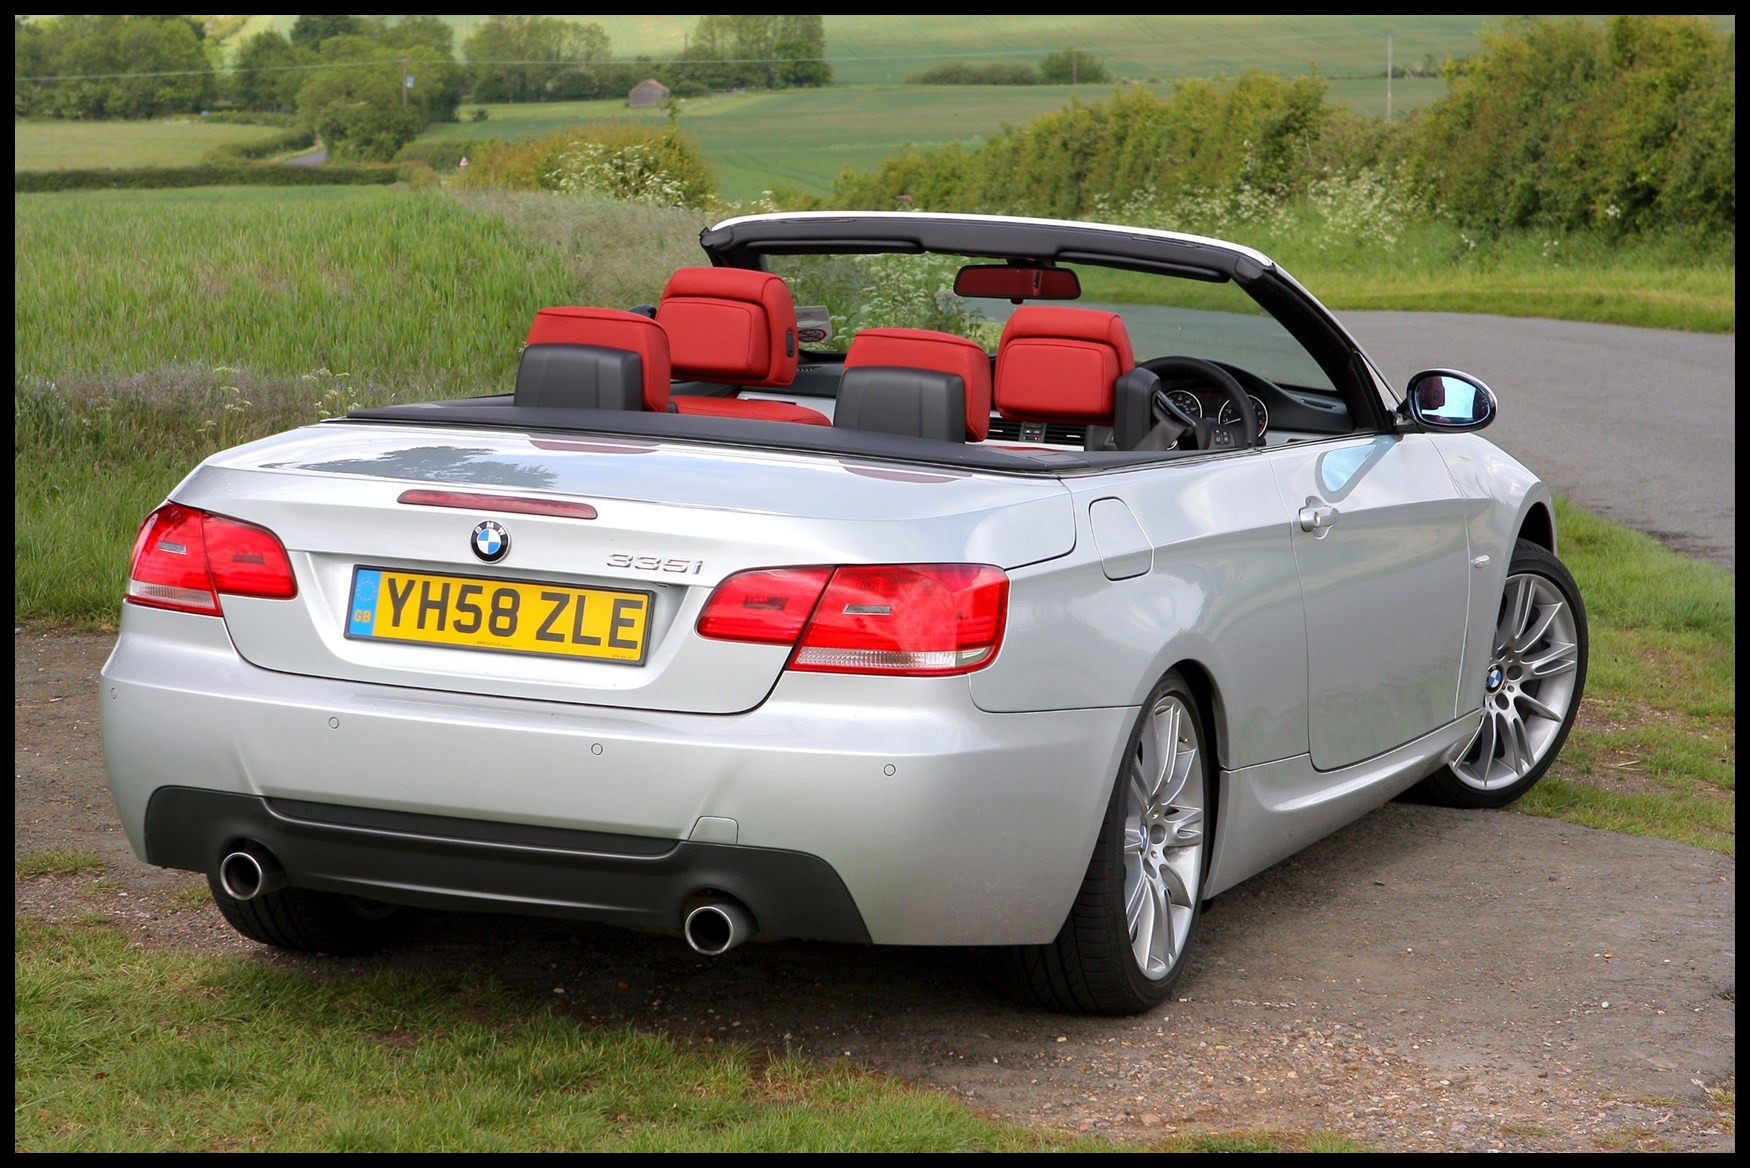 2012 Bmw 335is Convertible Lovely Bmw 3 Series Convertible Review 2007 2013